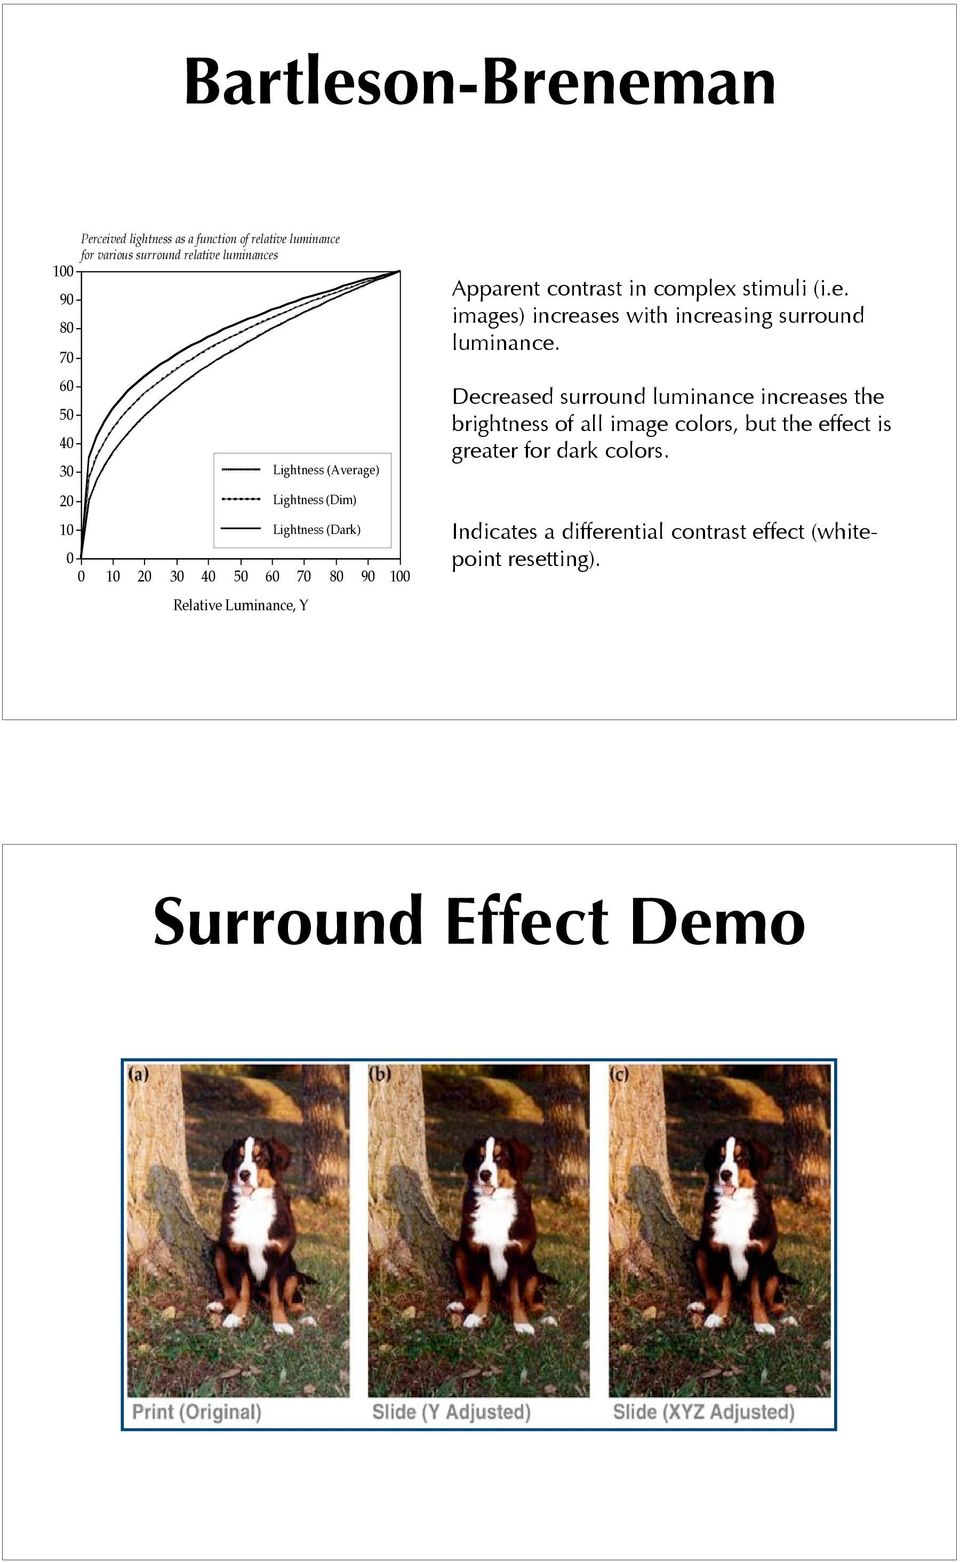 in complex stimuli (i.e. images) increases with increasing surround luminance.